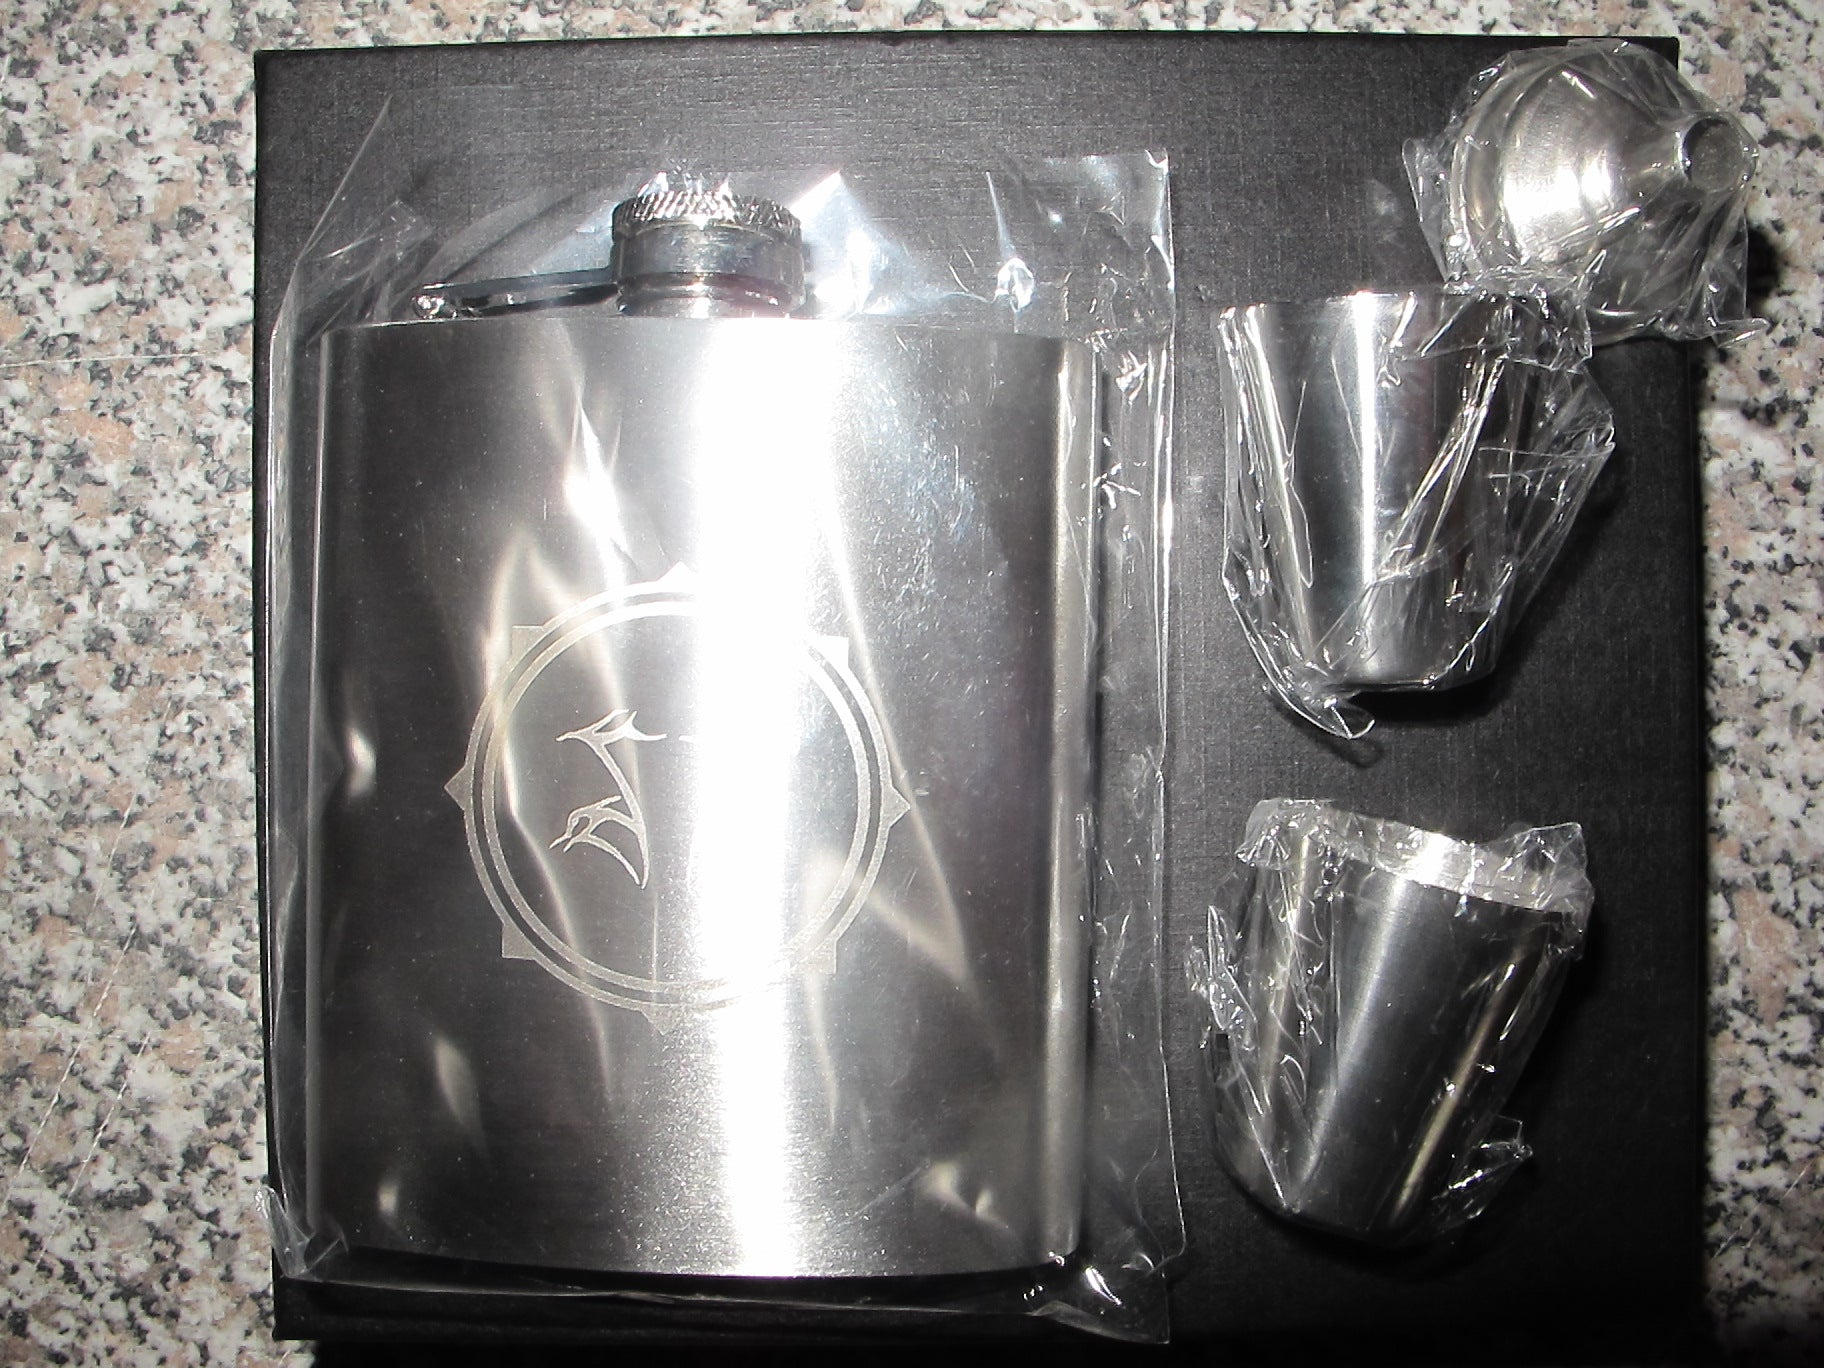 Shining - SG flask set with shot glasses